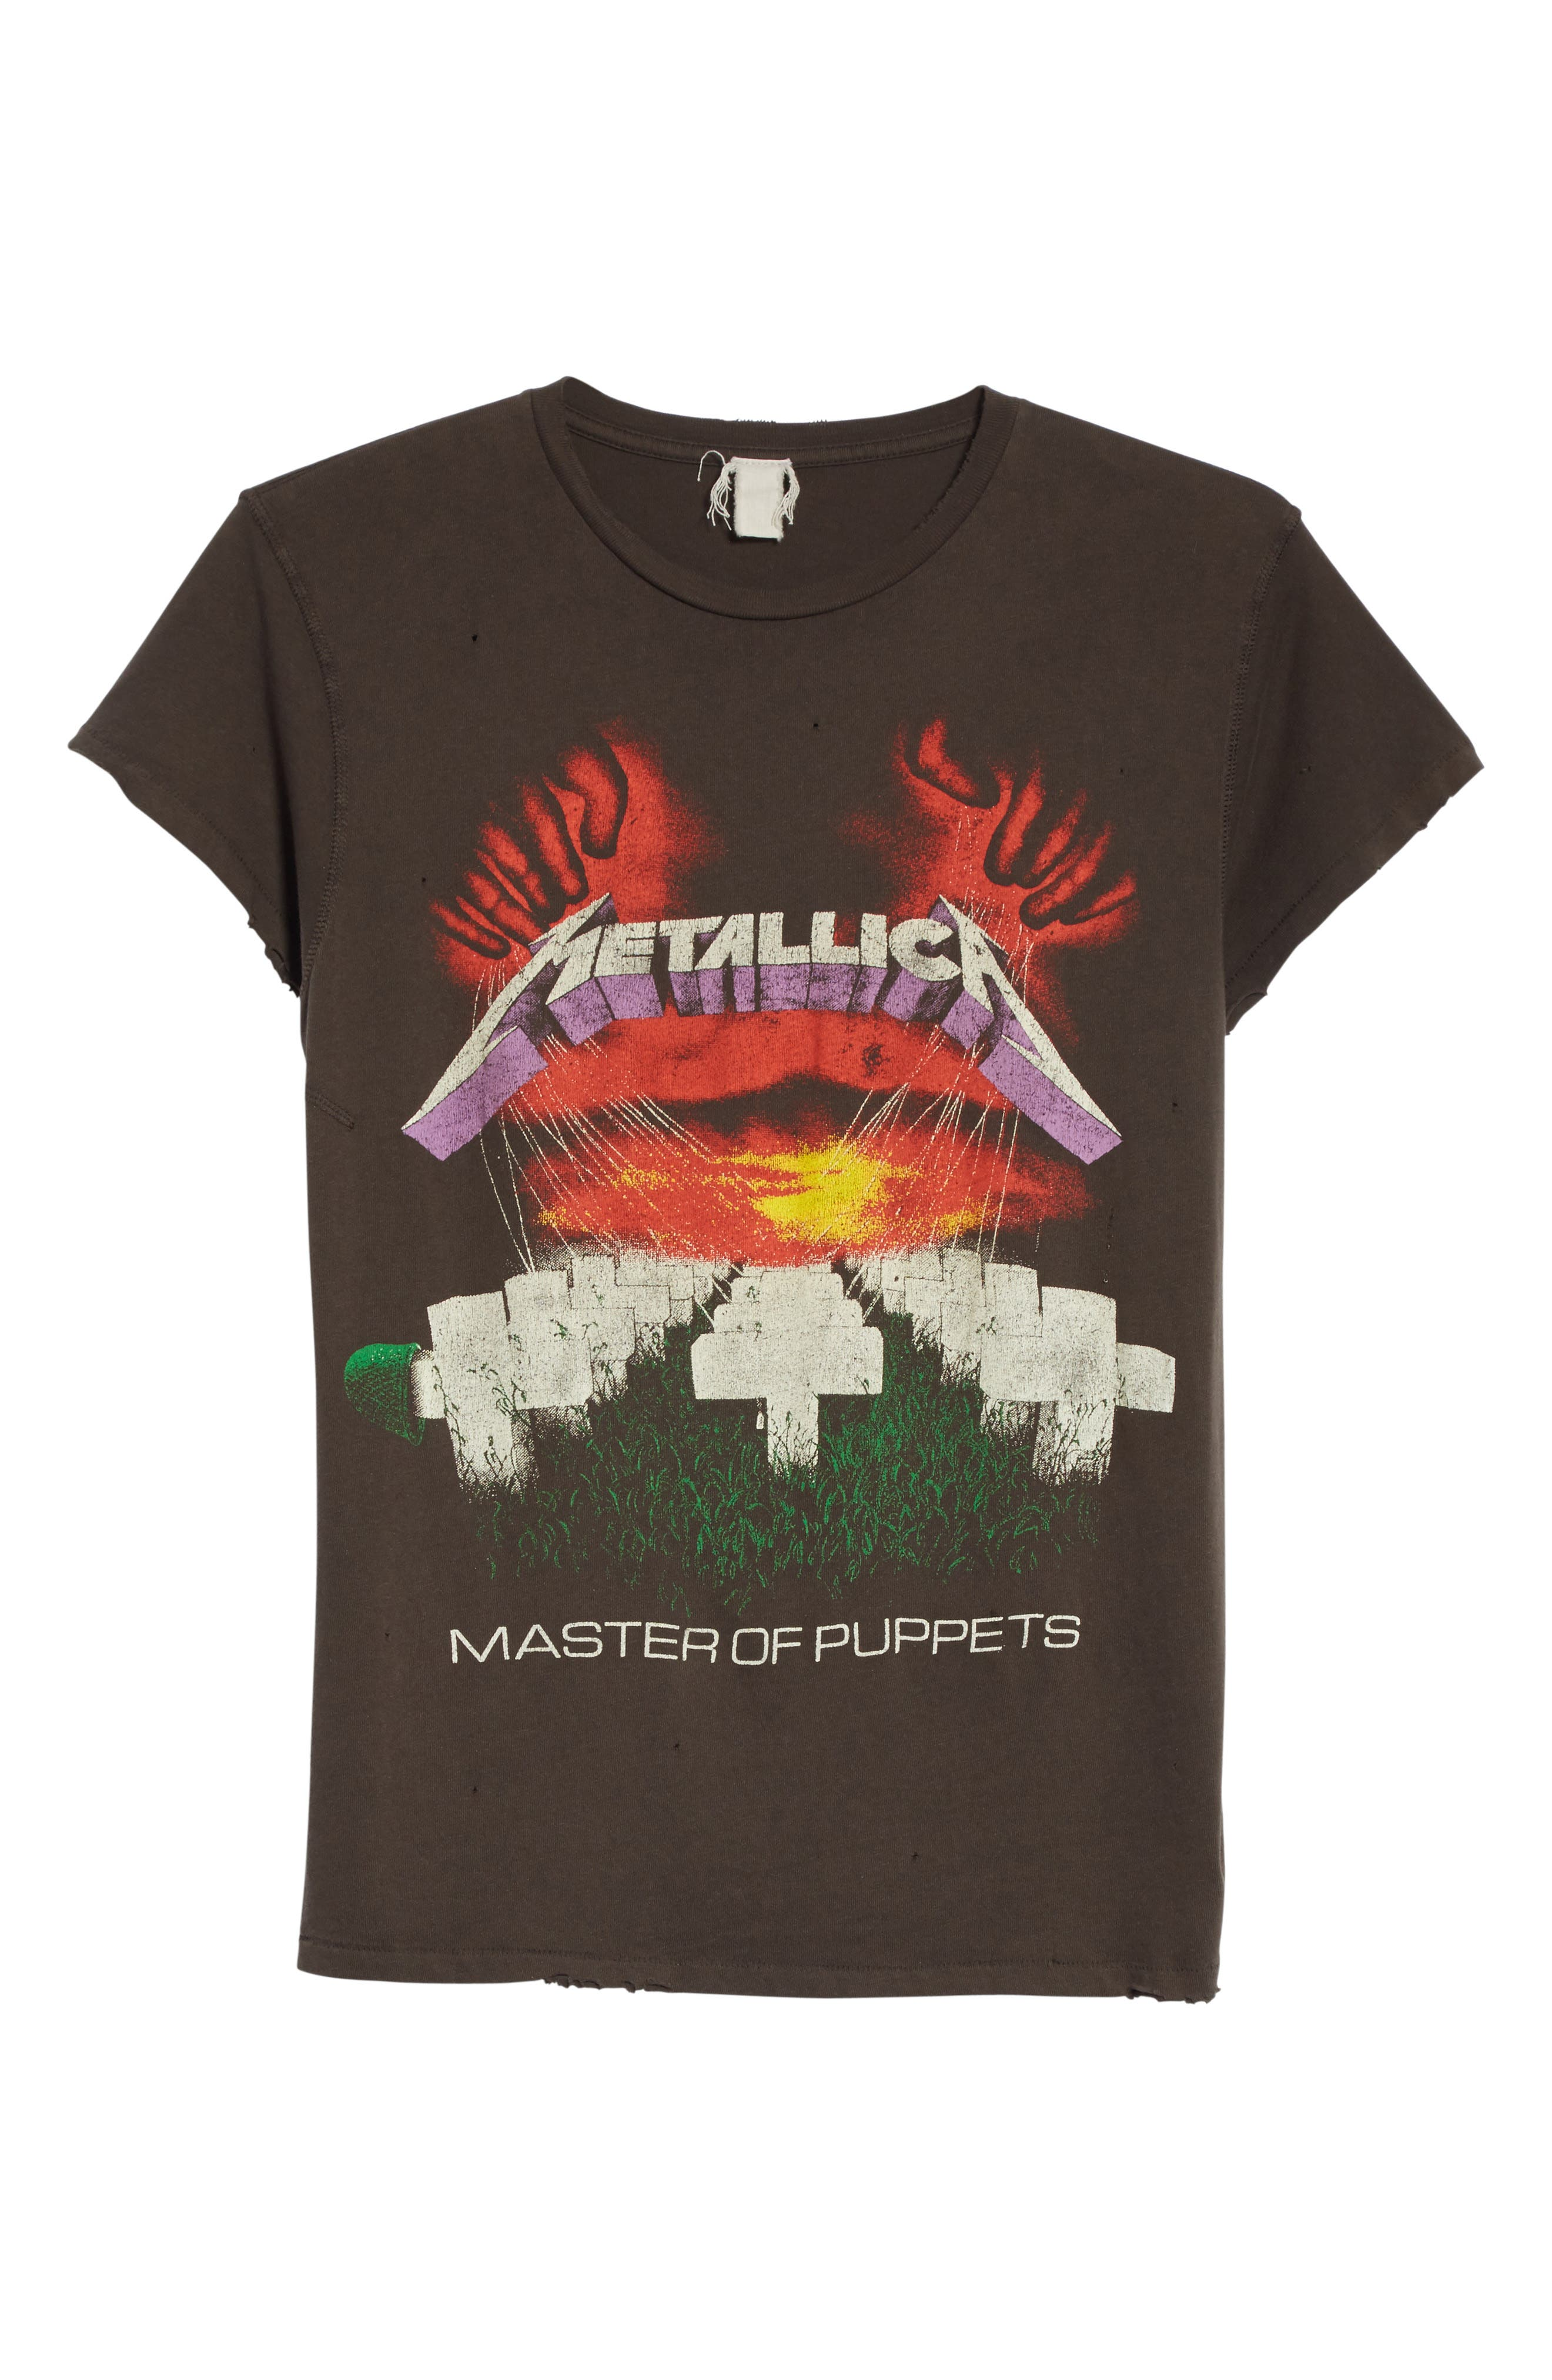 Metallica Master of Puppets Graphic T-Shirt,                             Alternate thumbnail 6, color,                             Dirty Black